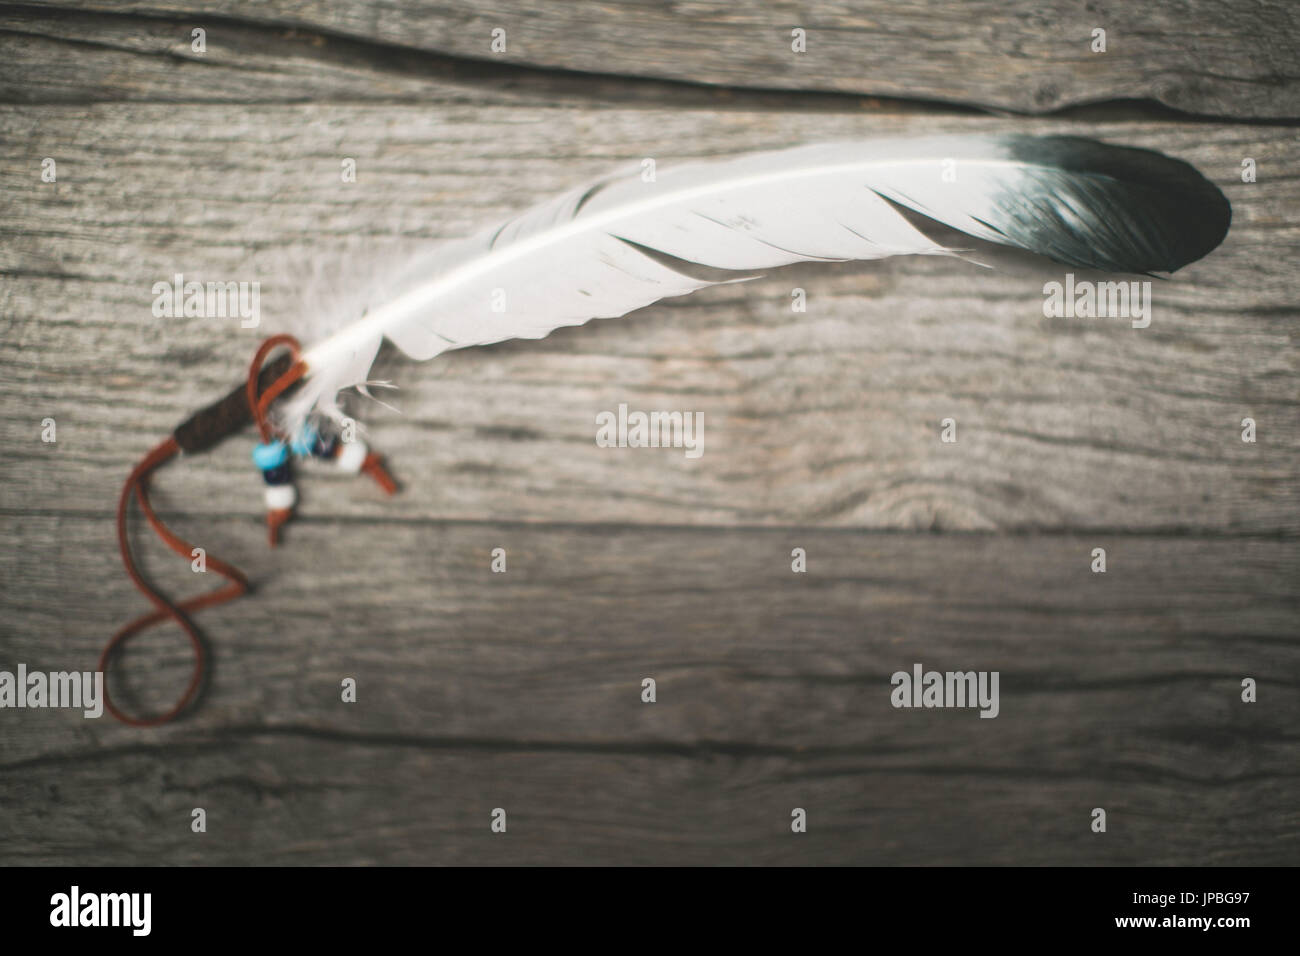 Indian feather, symbol - Stock Image